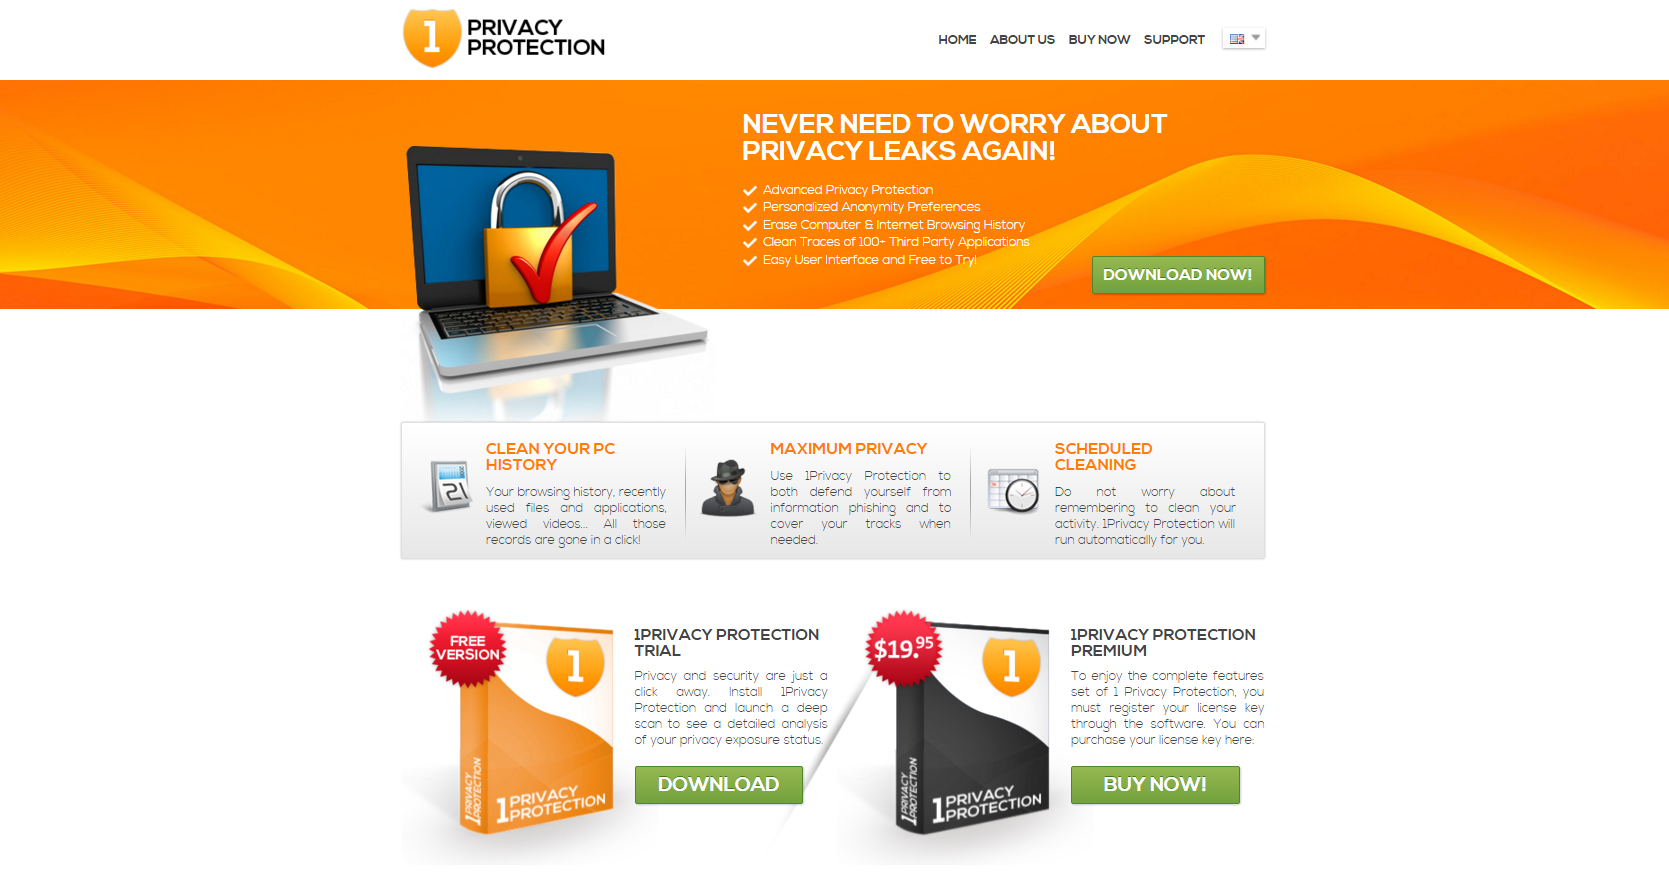 1 Privacy Protection ads